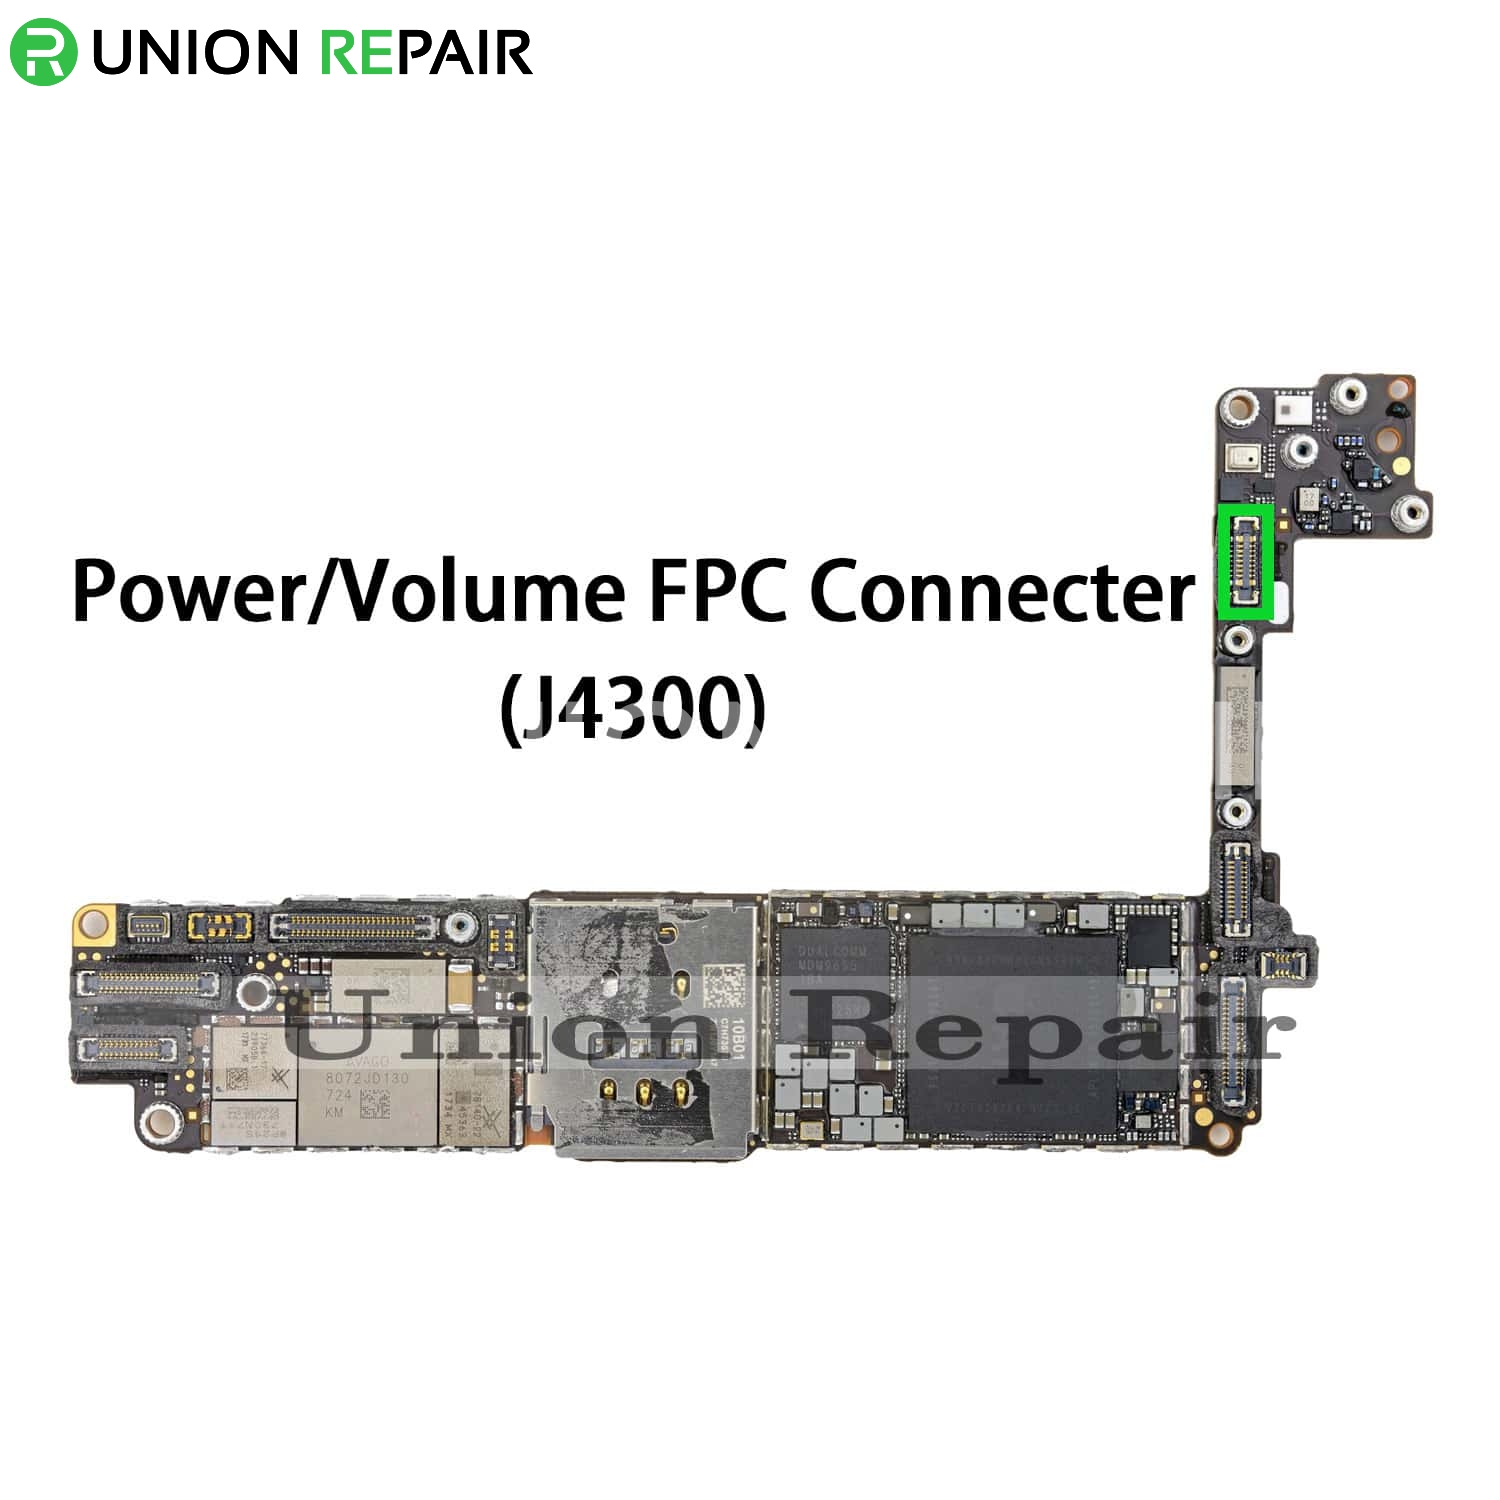 Replacement for iPhone 8 Power Button Connector Port Onboard